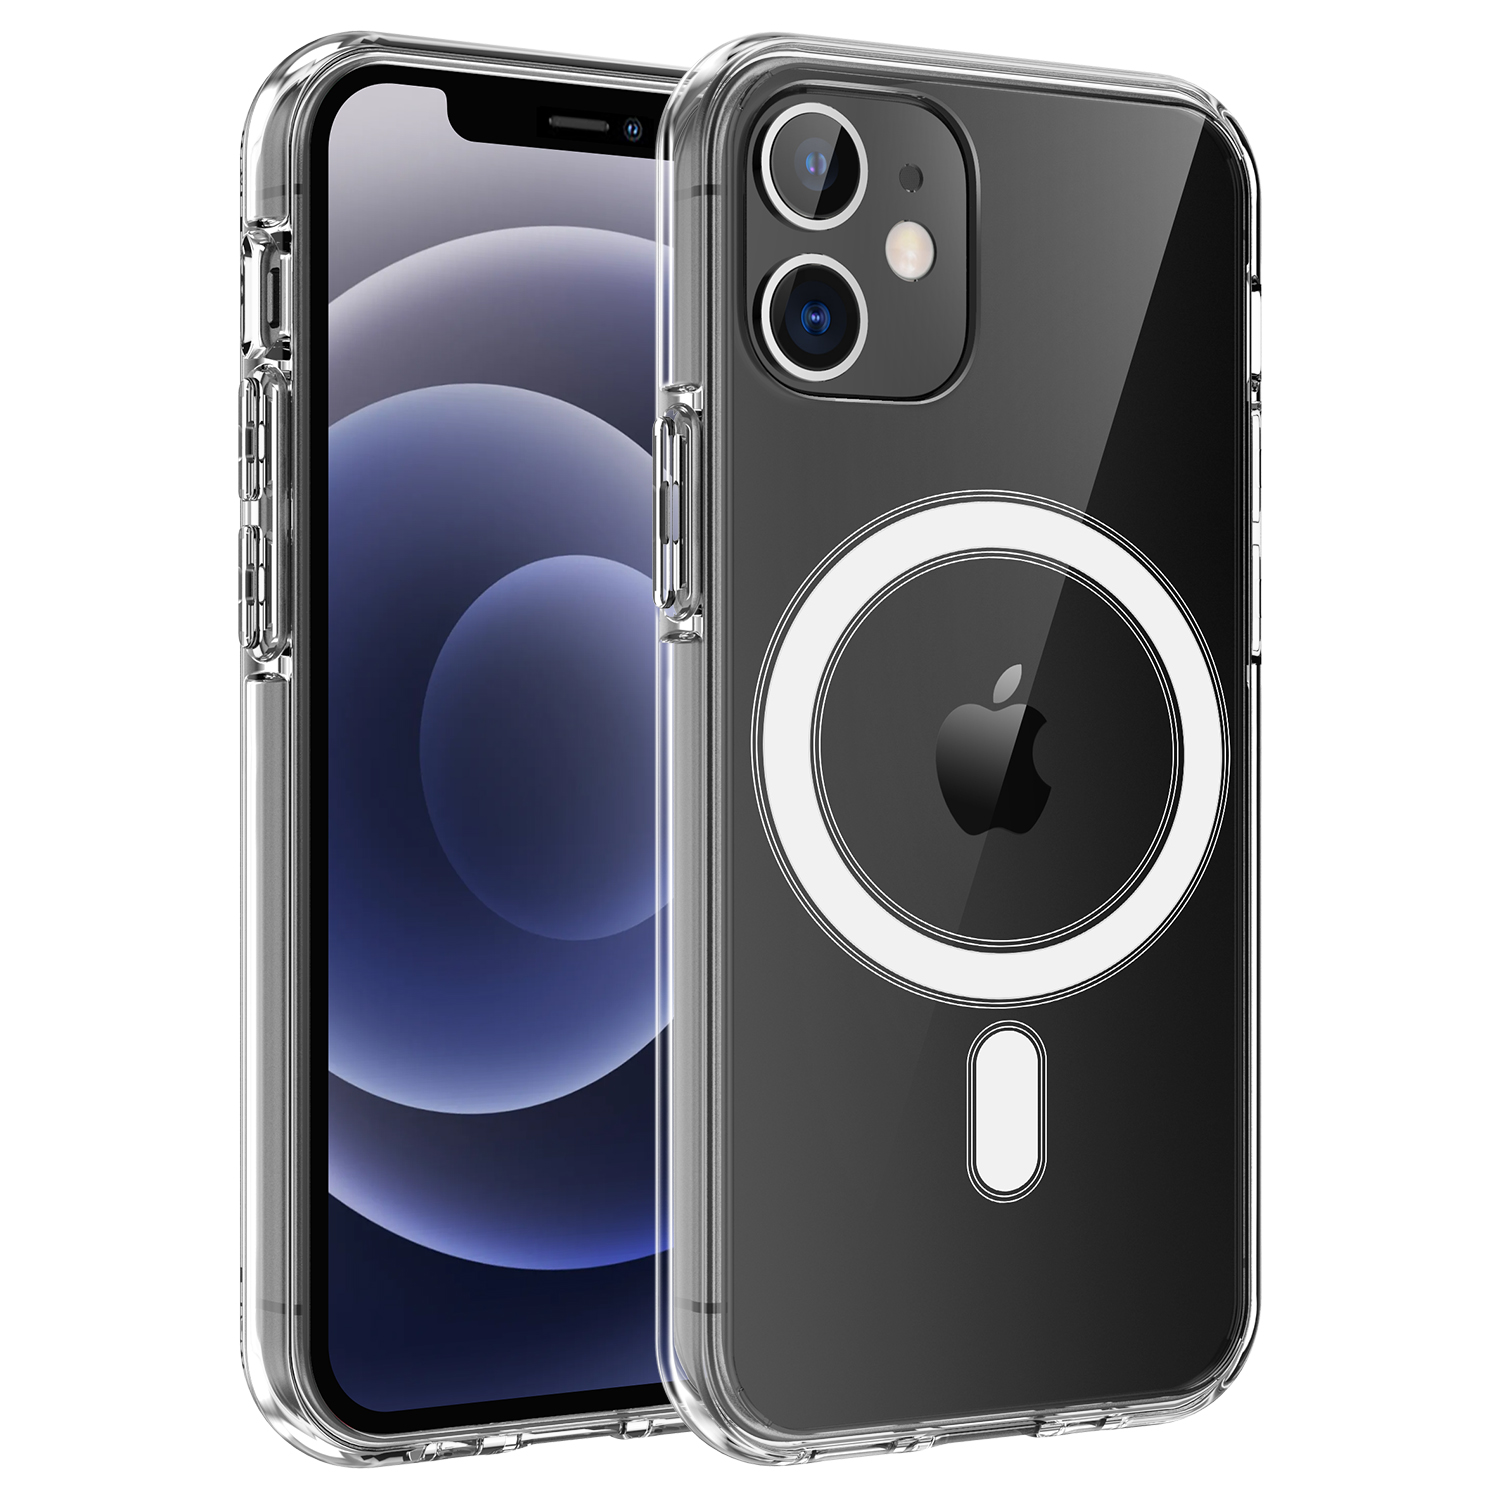 Transparent Clear Acrylic Waterproof Case for iPhone 12 Pro Max 1